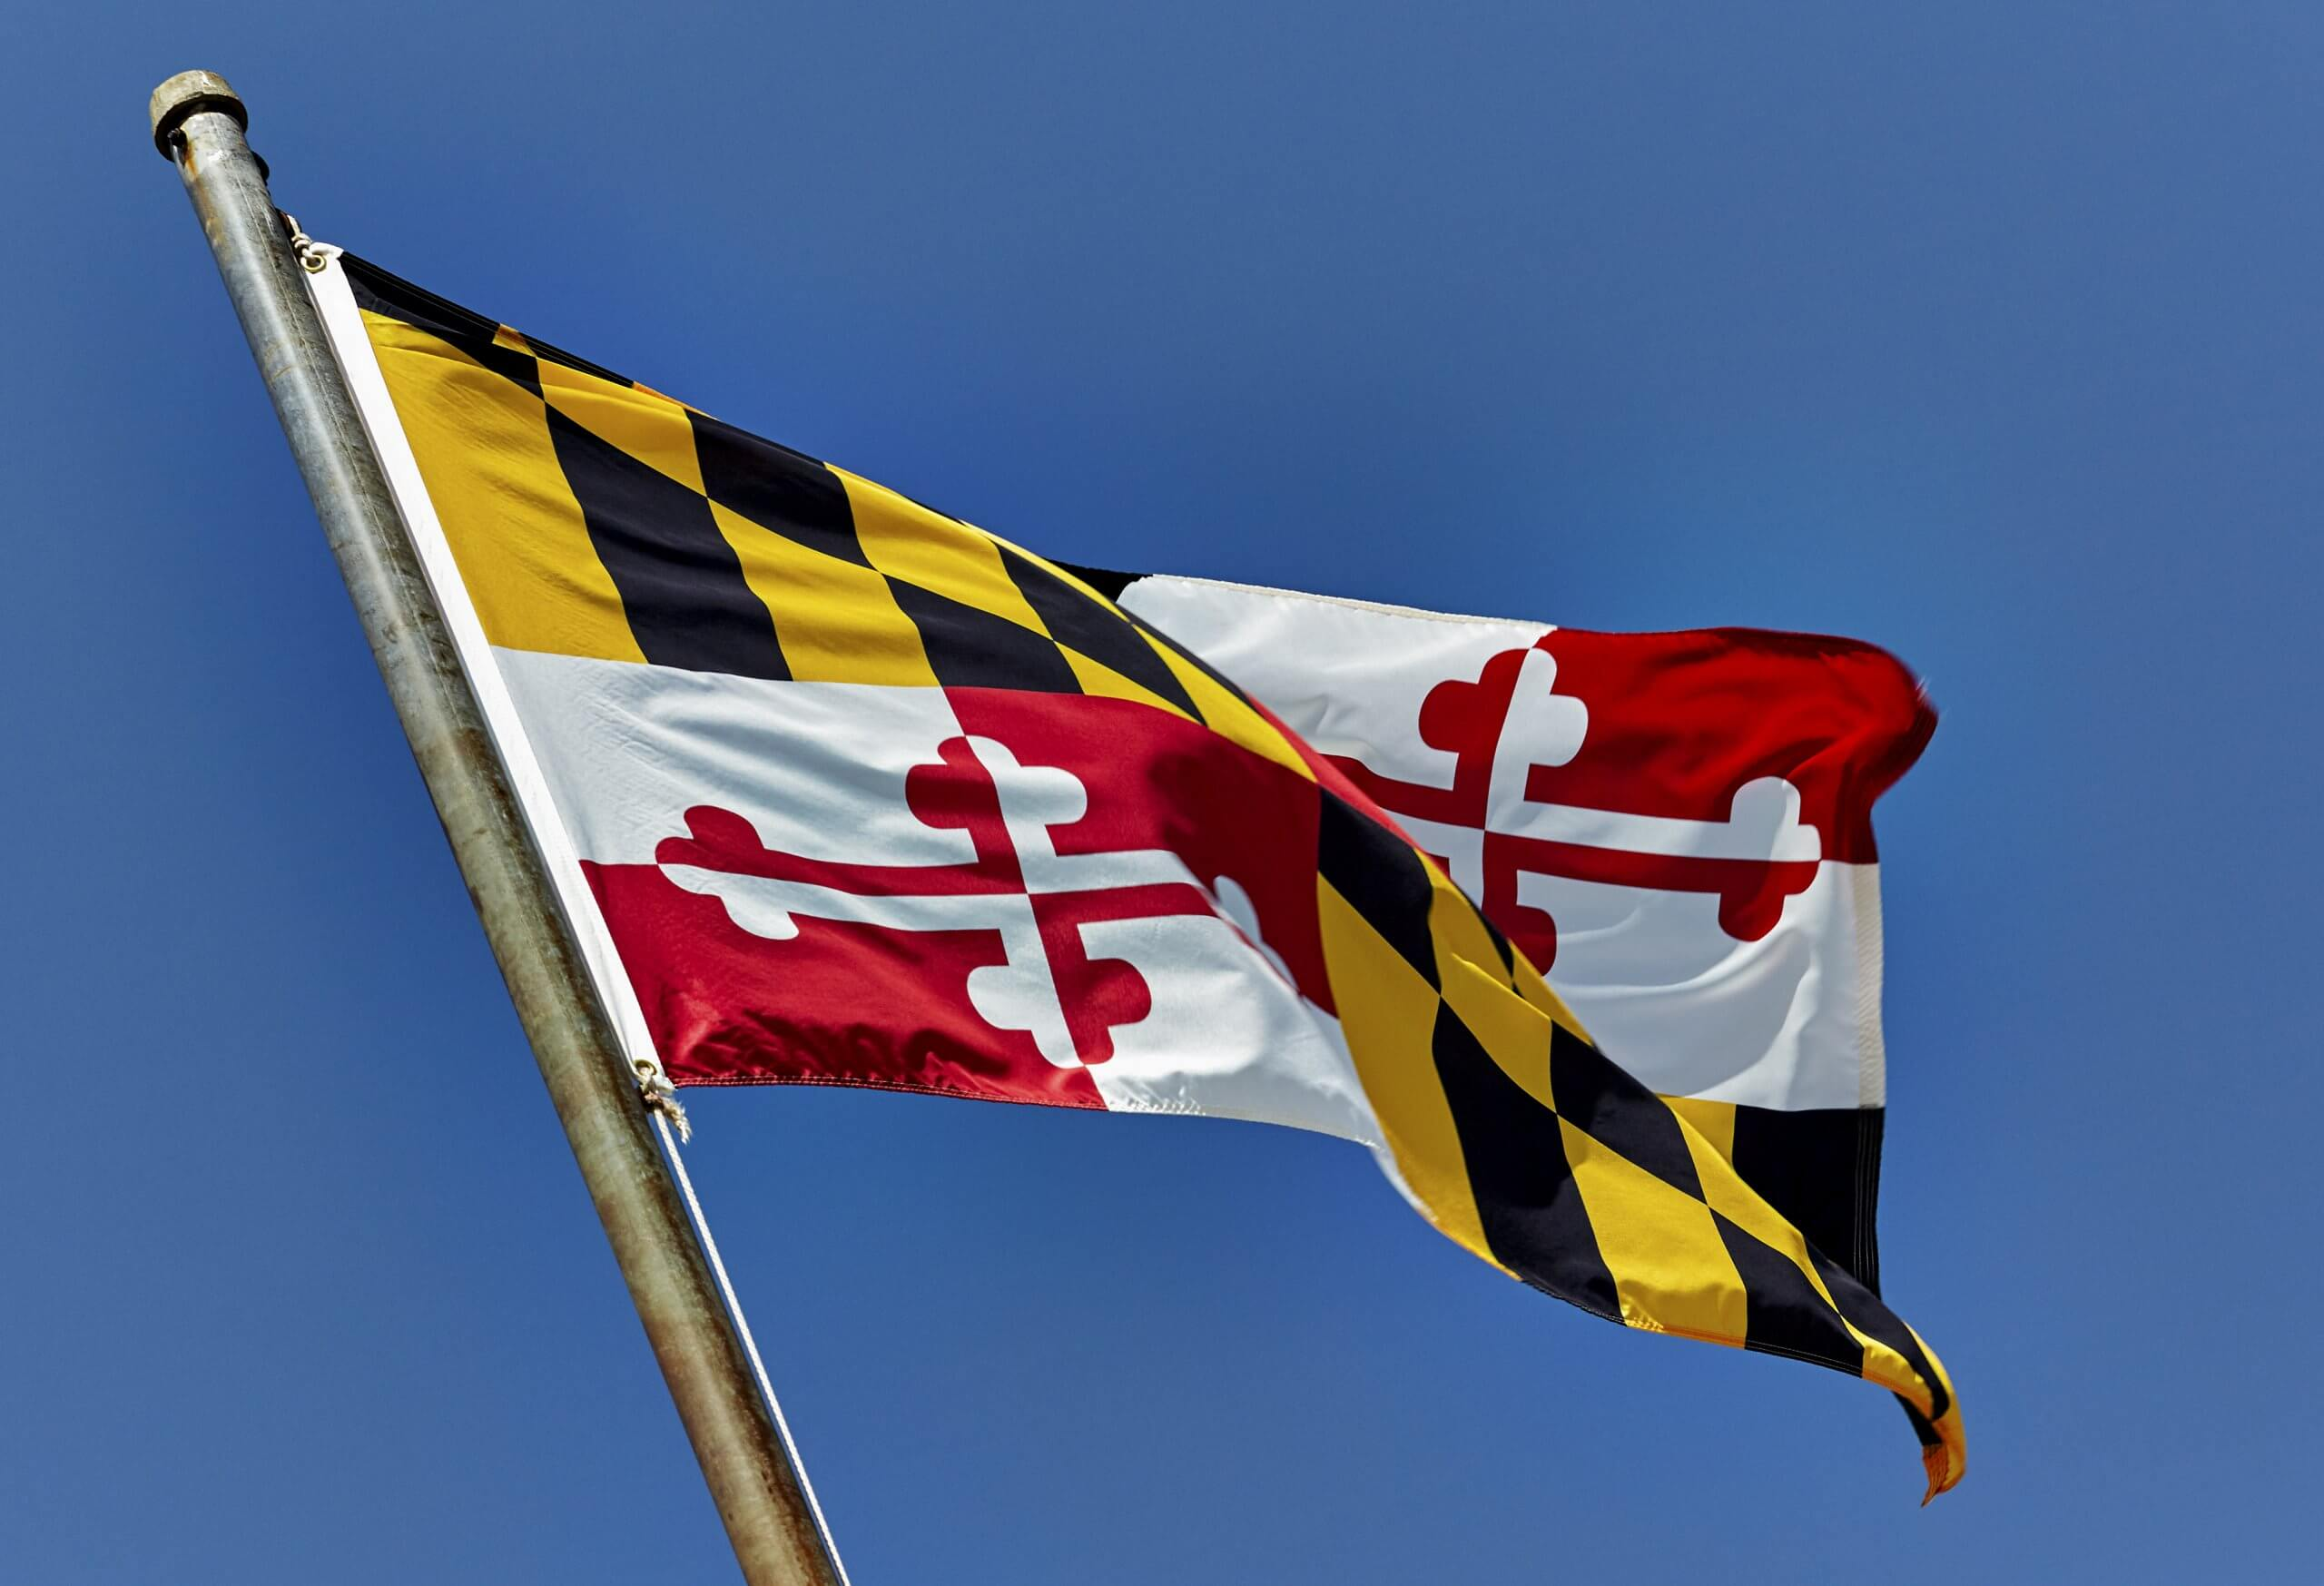 Maryland State Flag, sports betting